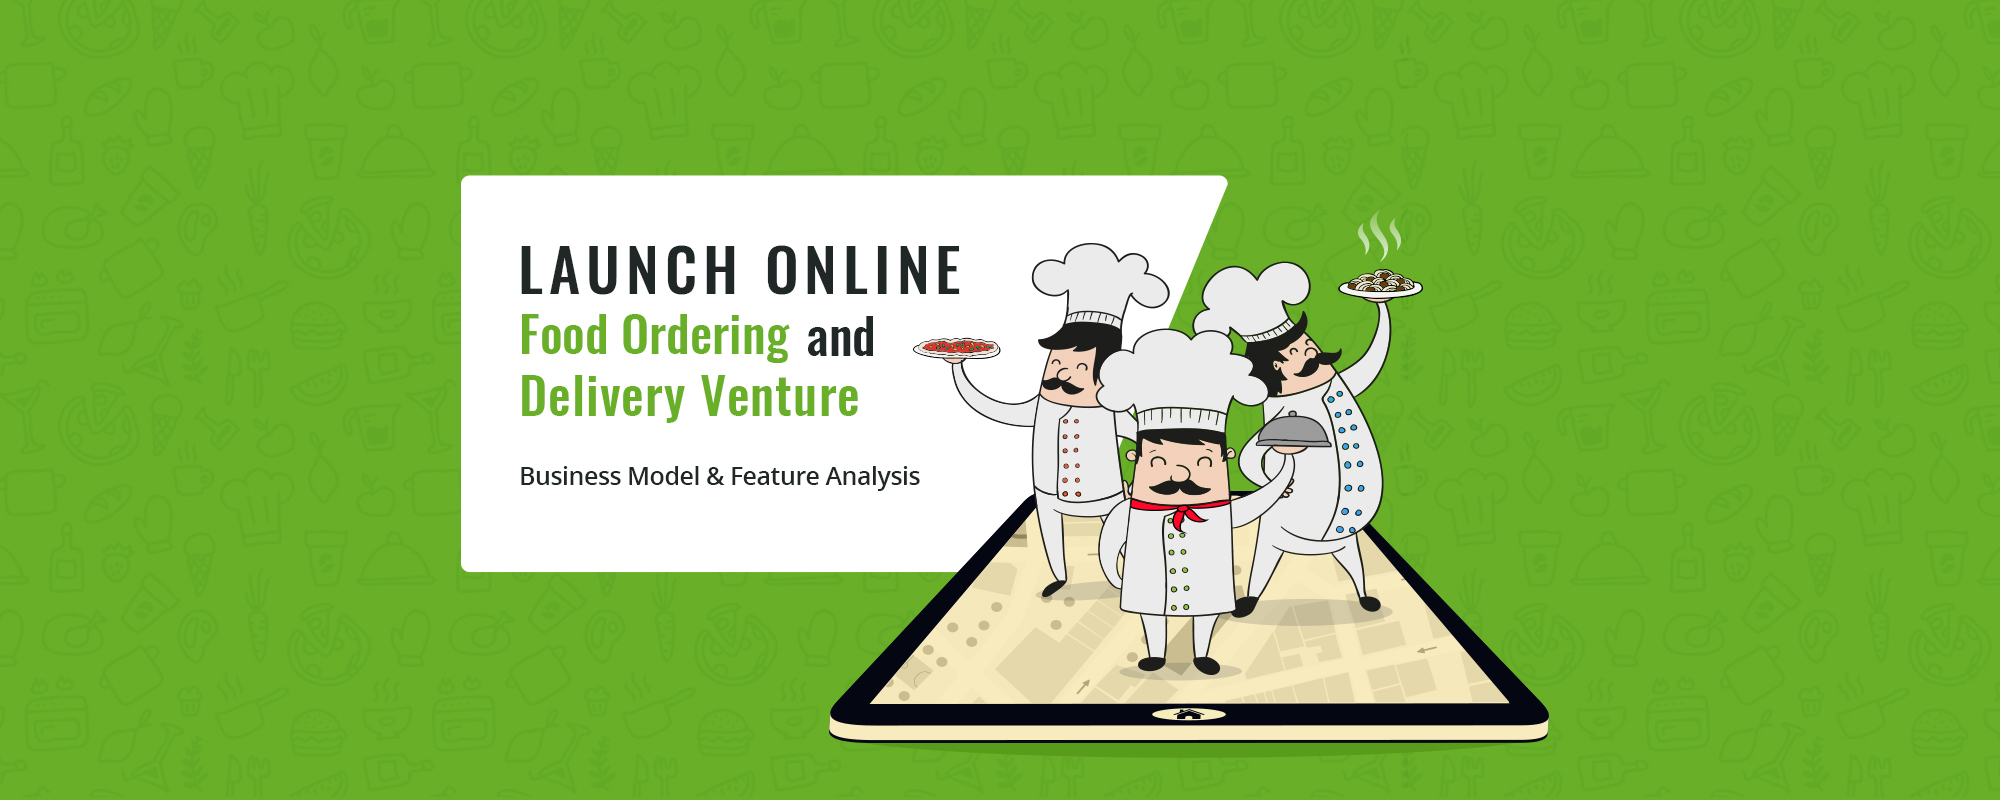 How to Start Online Food Business – Business Model & Feature Insights